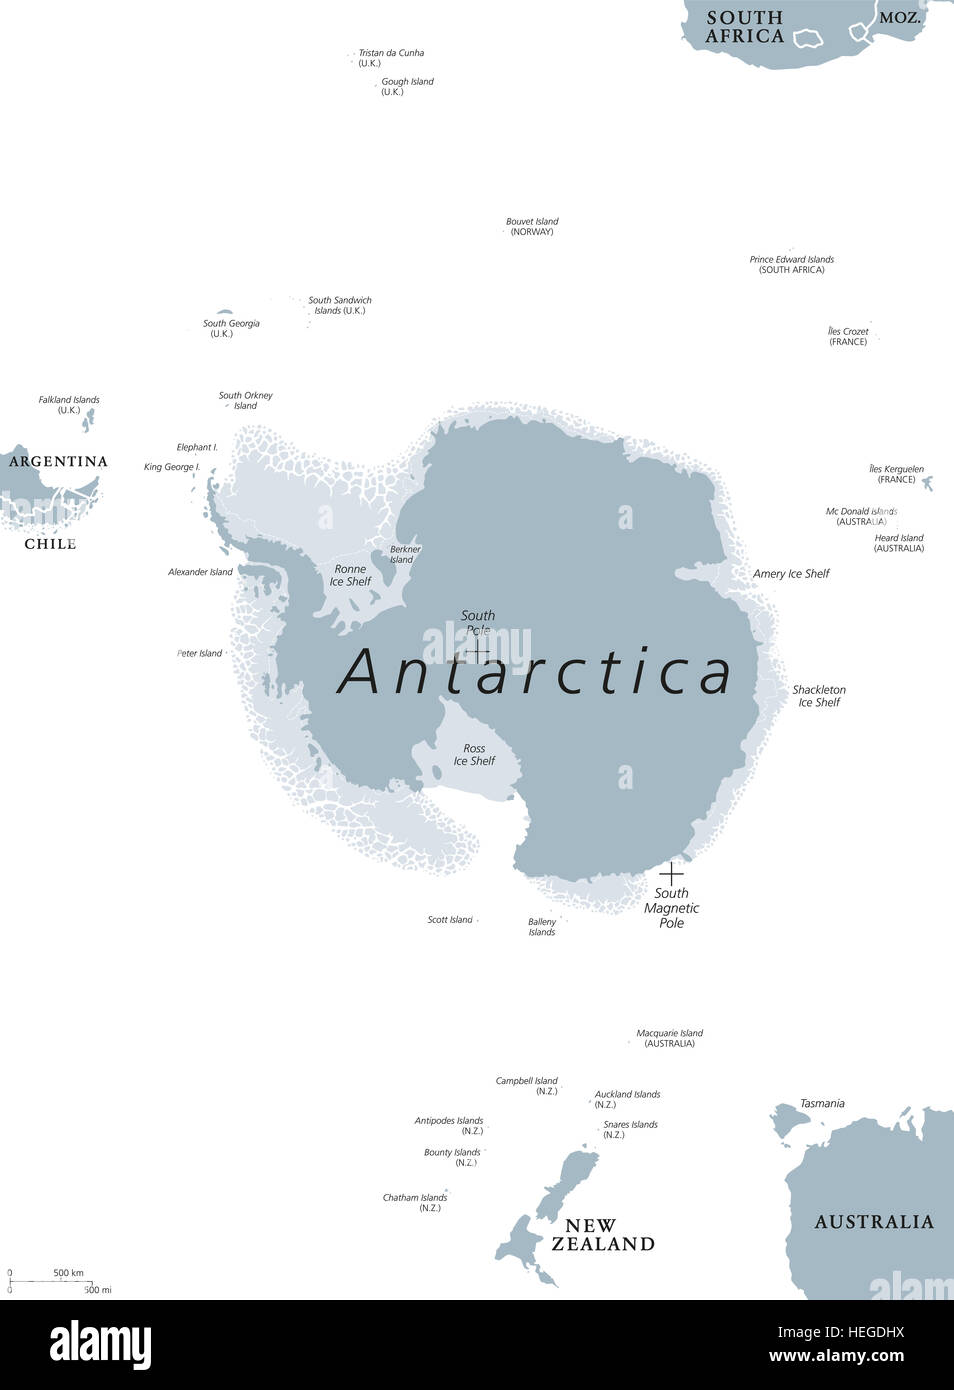 Antarctica Political Map The Antarctic Polar Region Around The - Antarctica political map